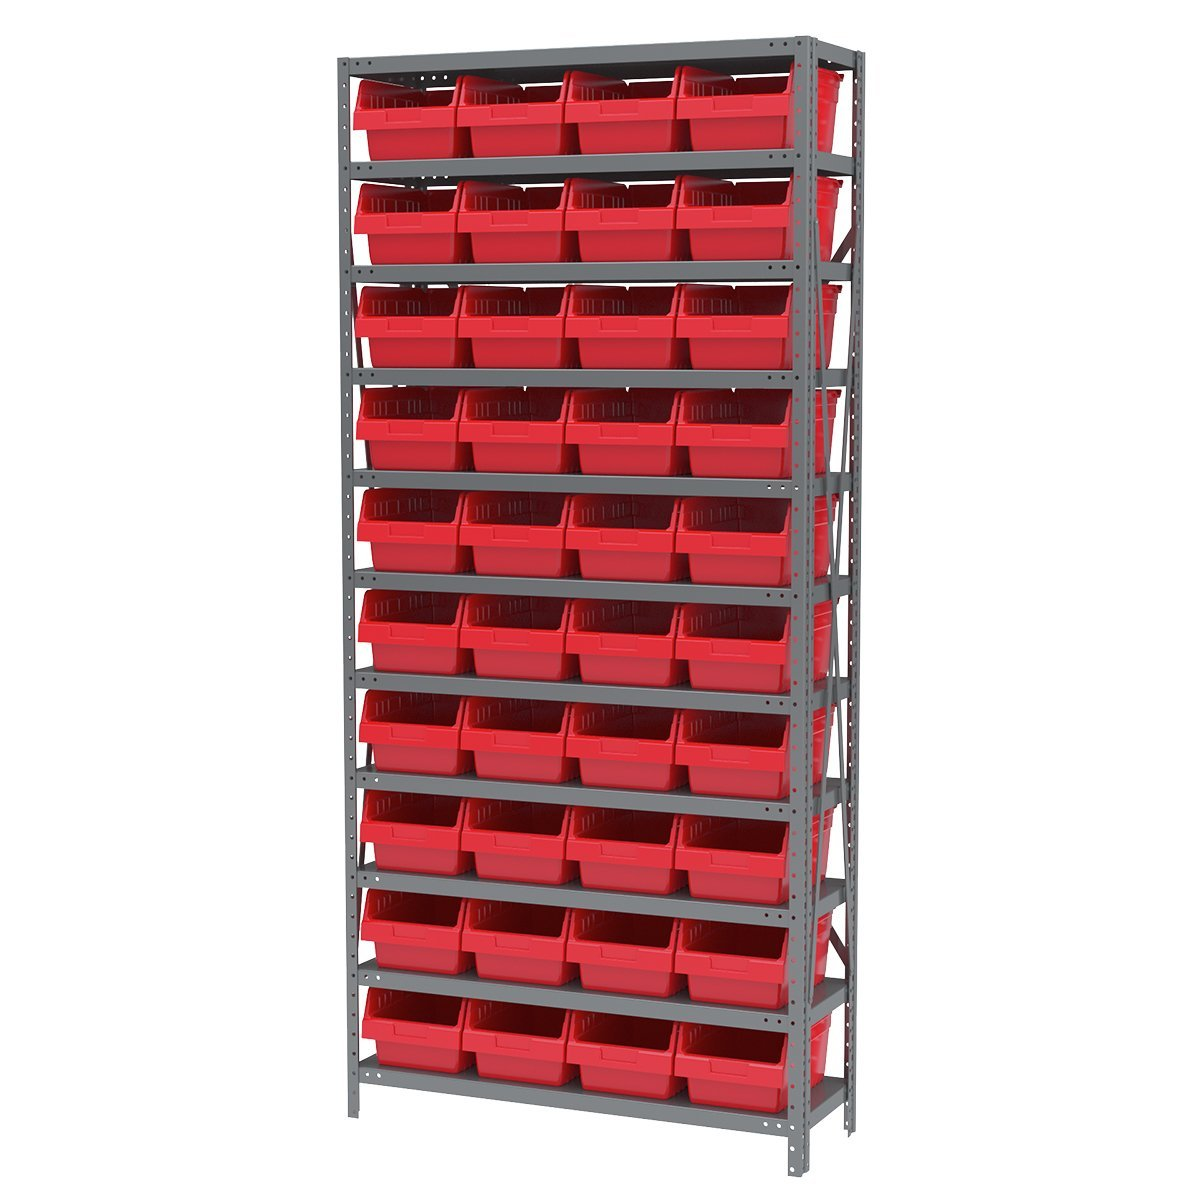 AKRO-MILS AS1279080 12-Inch D by 36-Inch W by 79-Inch H Powder Coated Steel Shelving Unit with 10 Shelves and 40 Red 30080 Shelf Bins, Grey